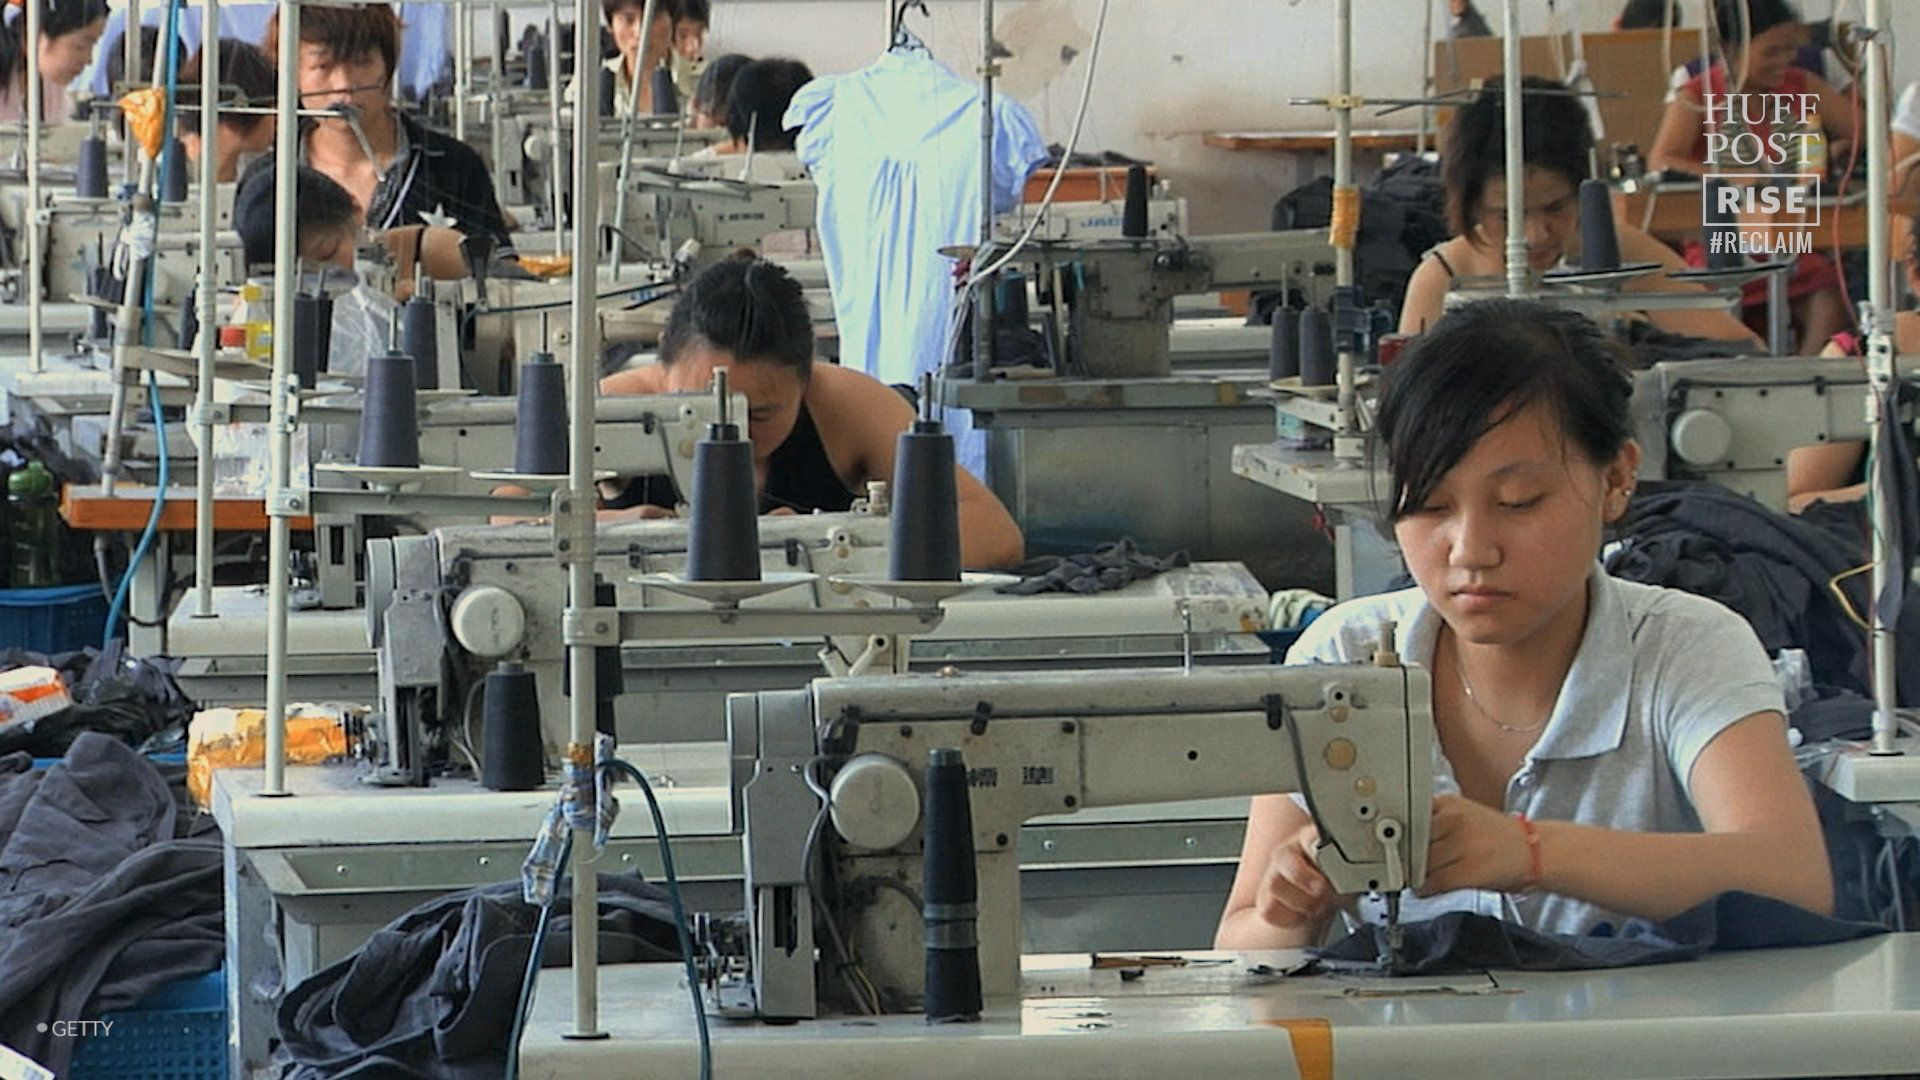 MS Rows of people at sewing machines in clothing factory  Ningbo Zhejiang China